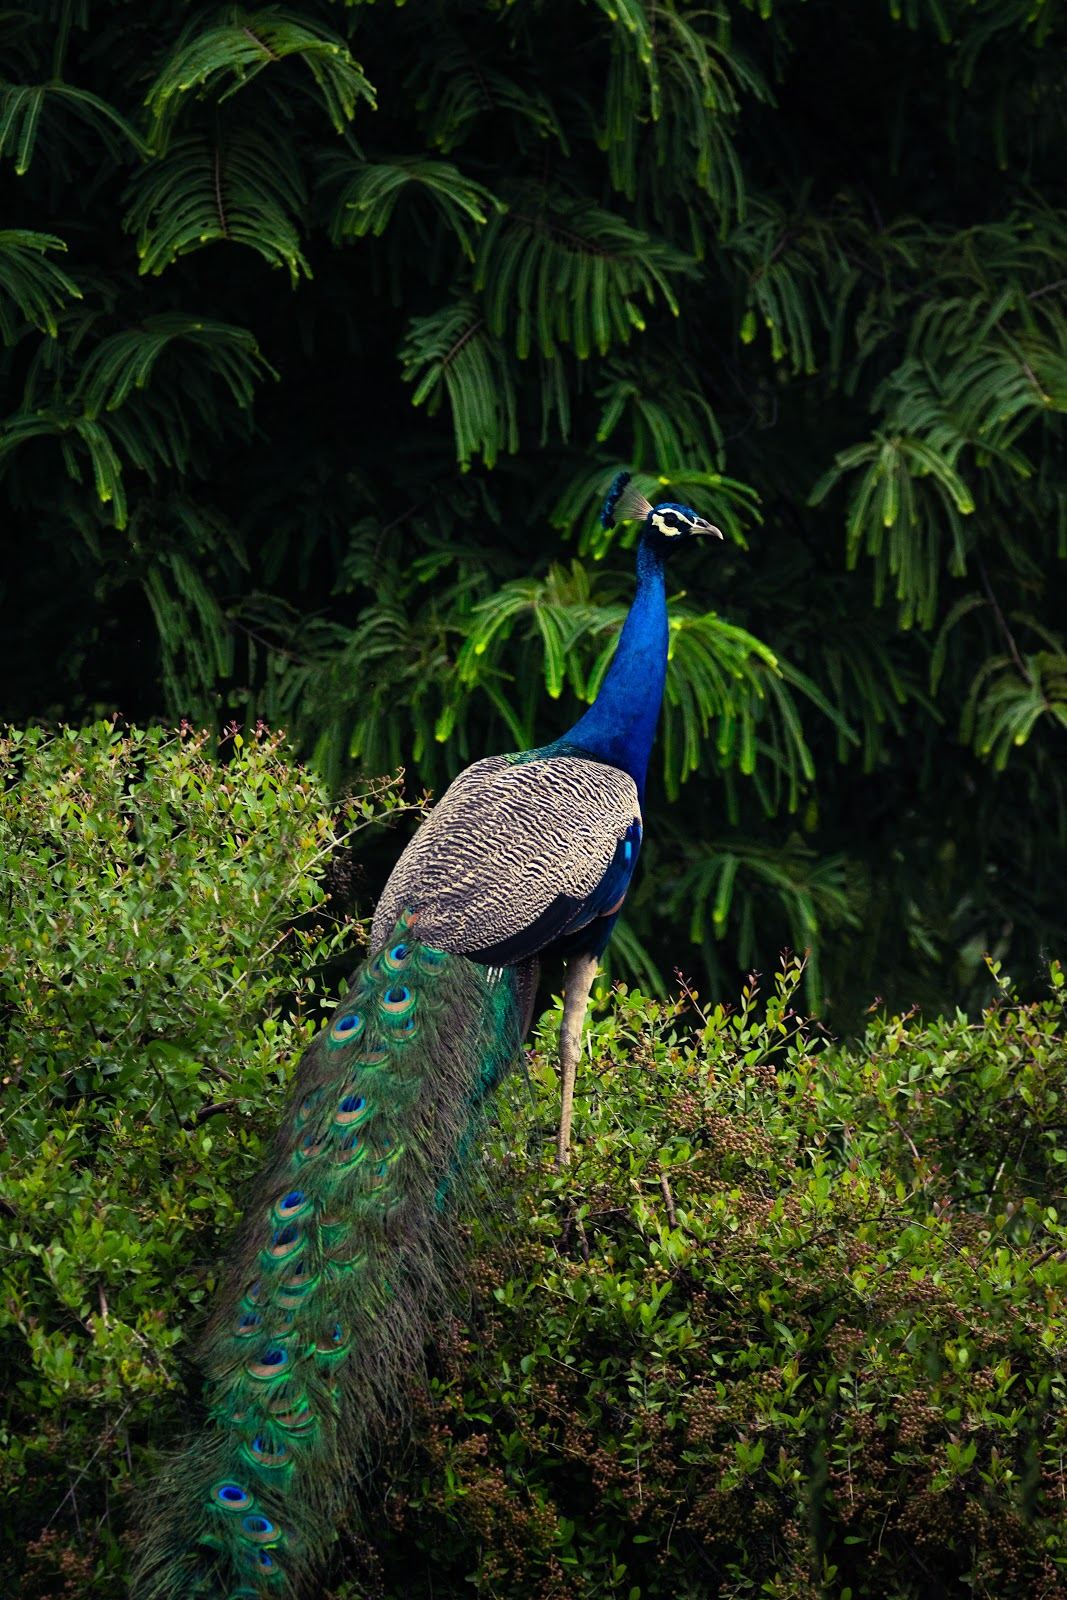 peacock-on-green-grass-images